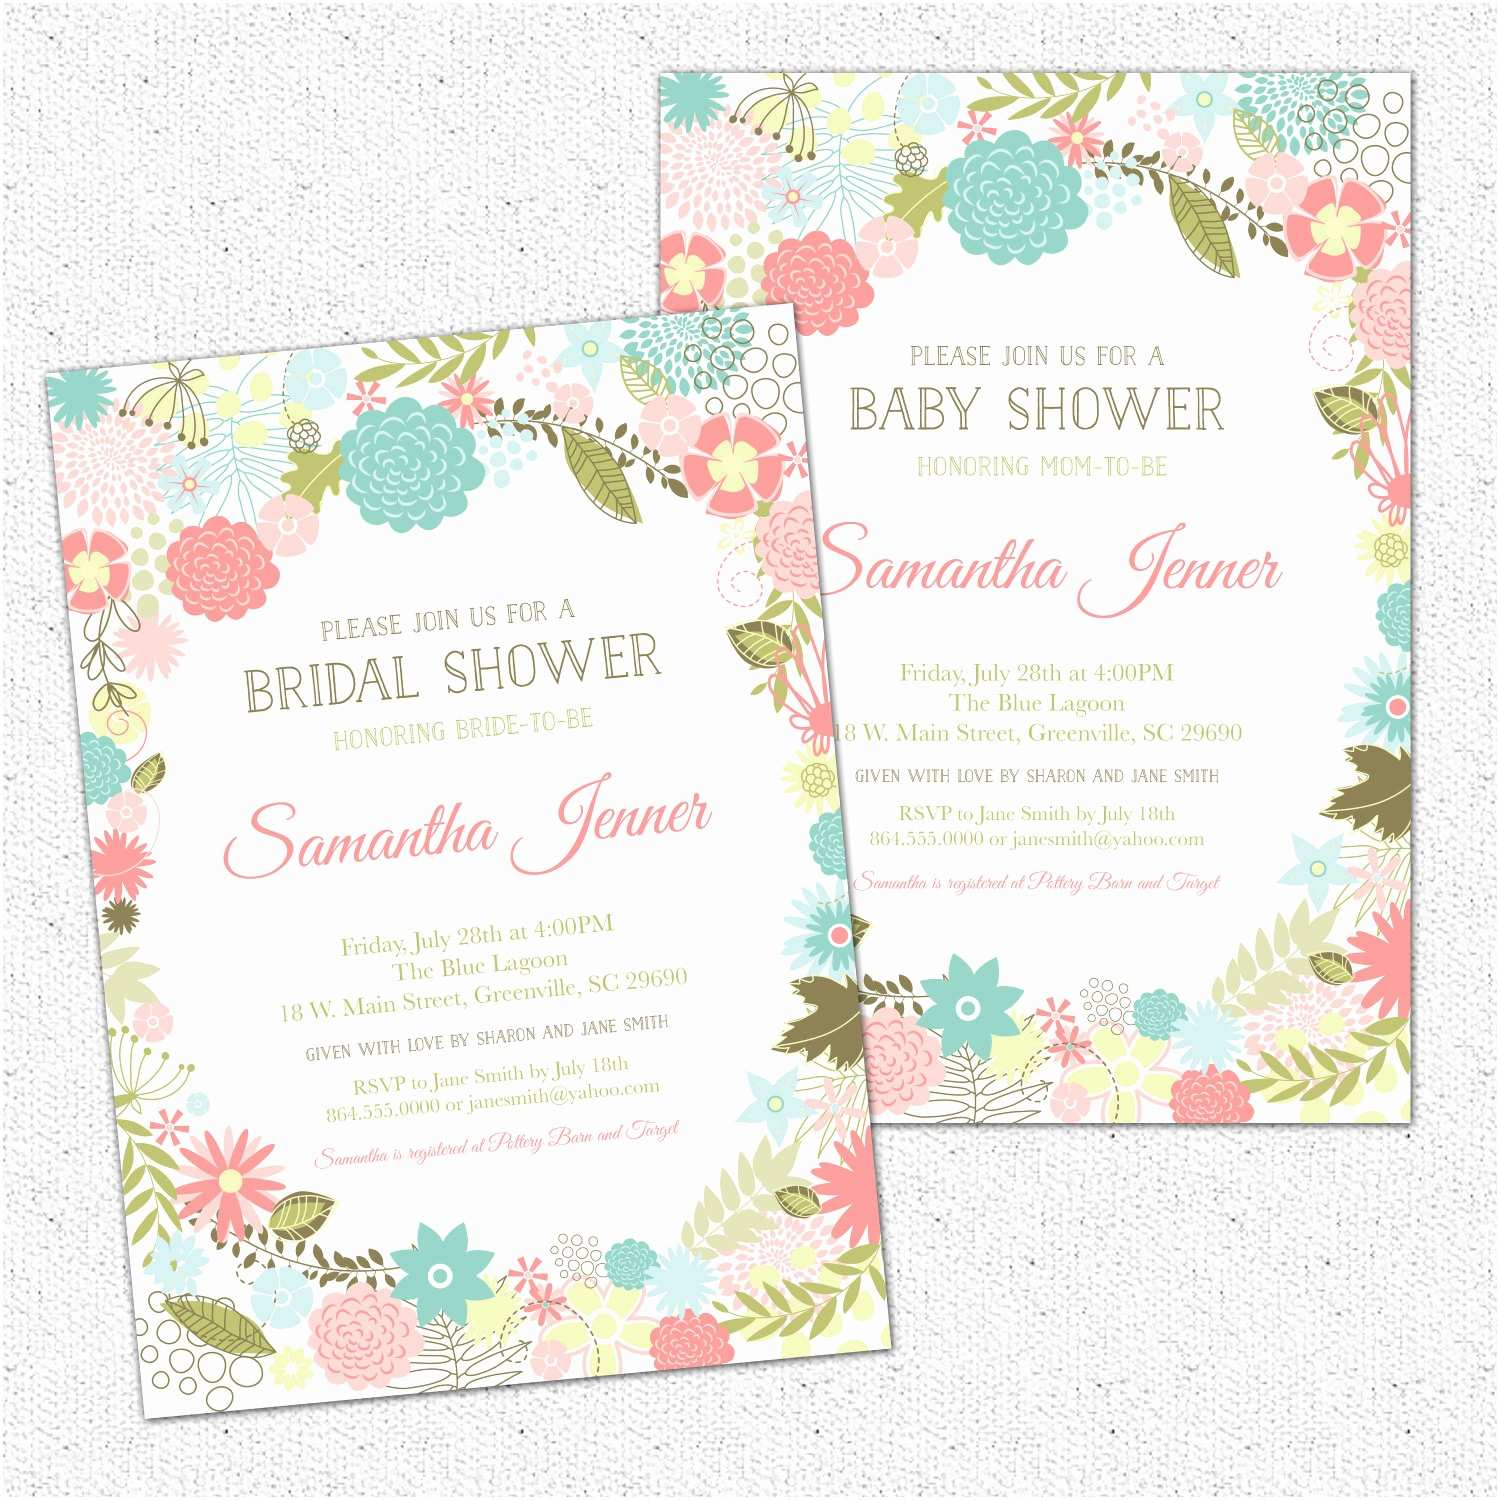 Shabby Chic Baby Shower Invitations Shabby Chic Baby Shower Invites